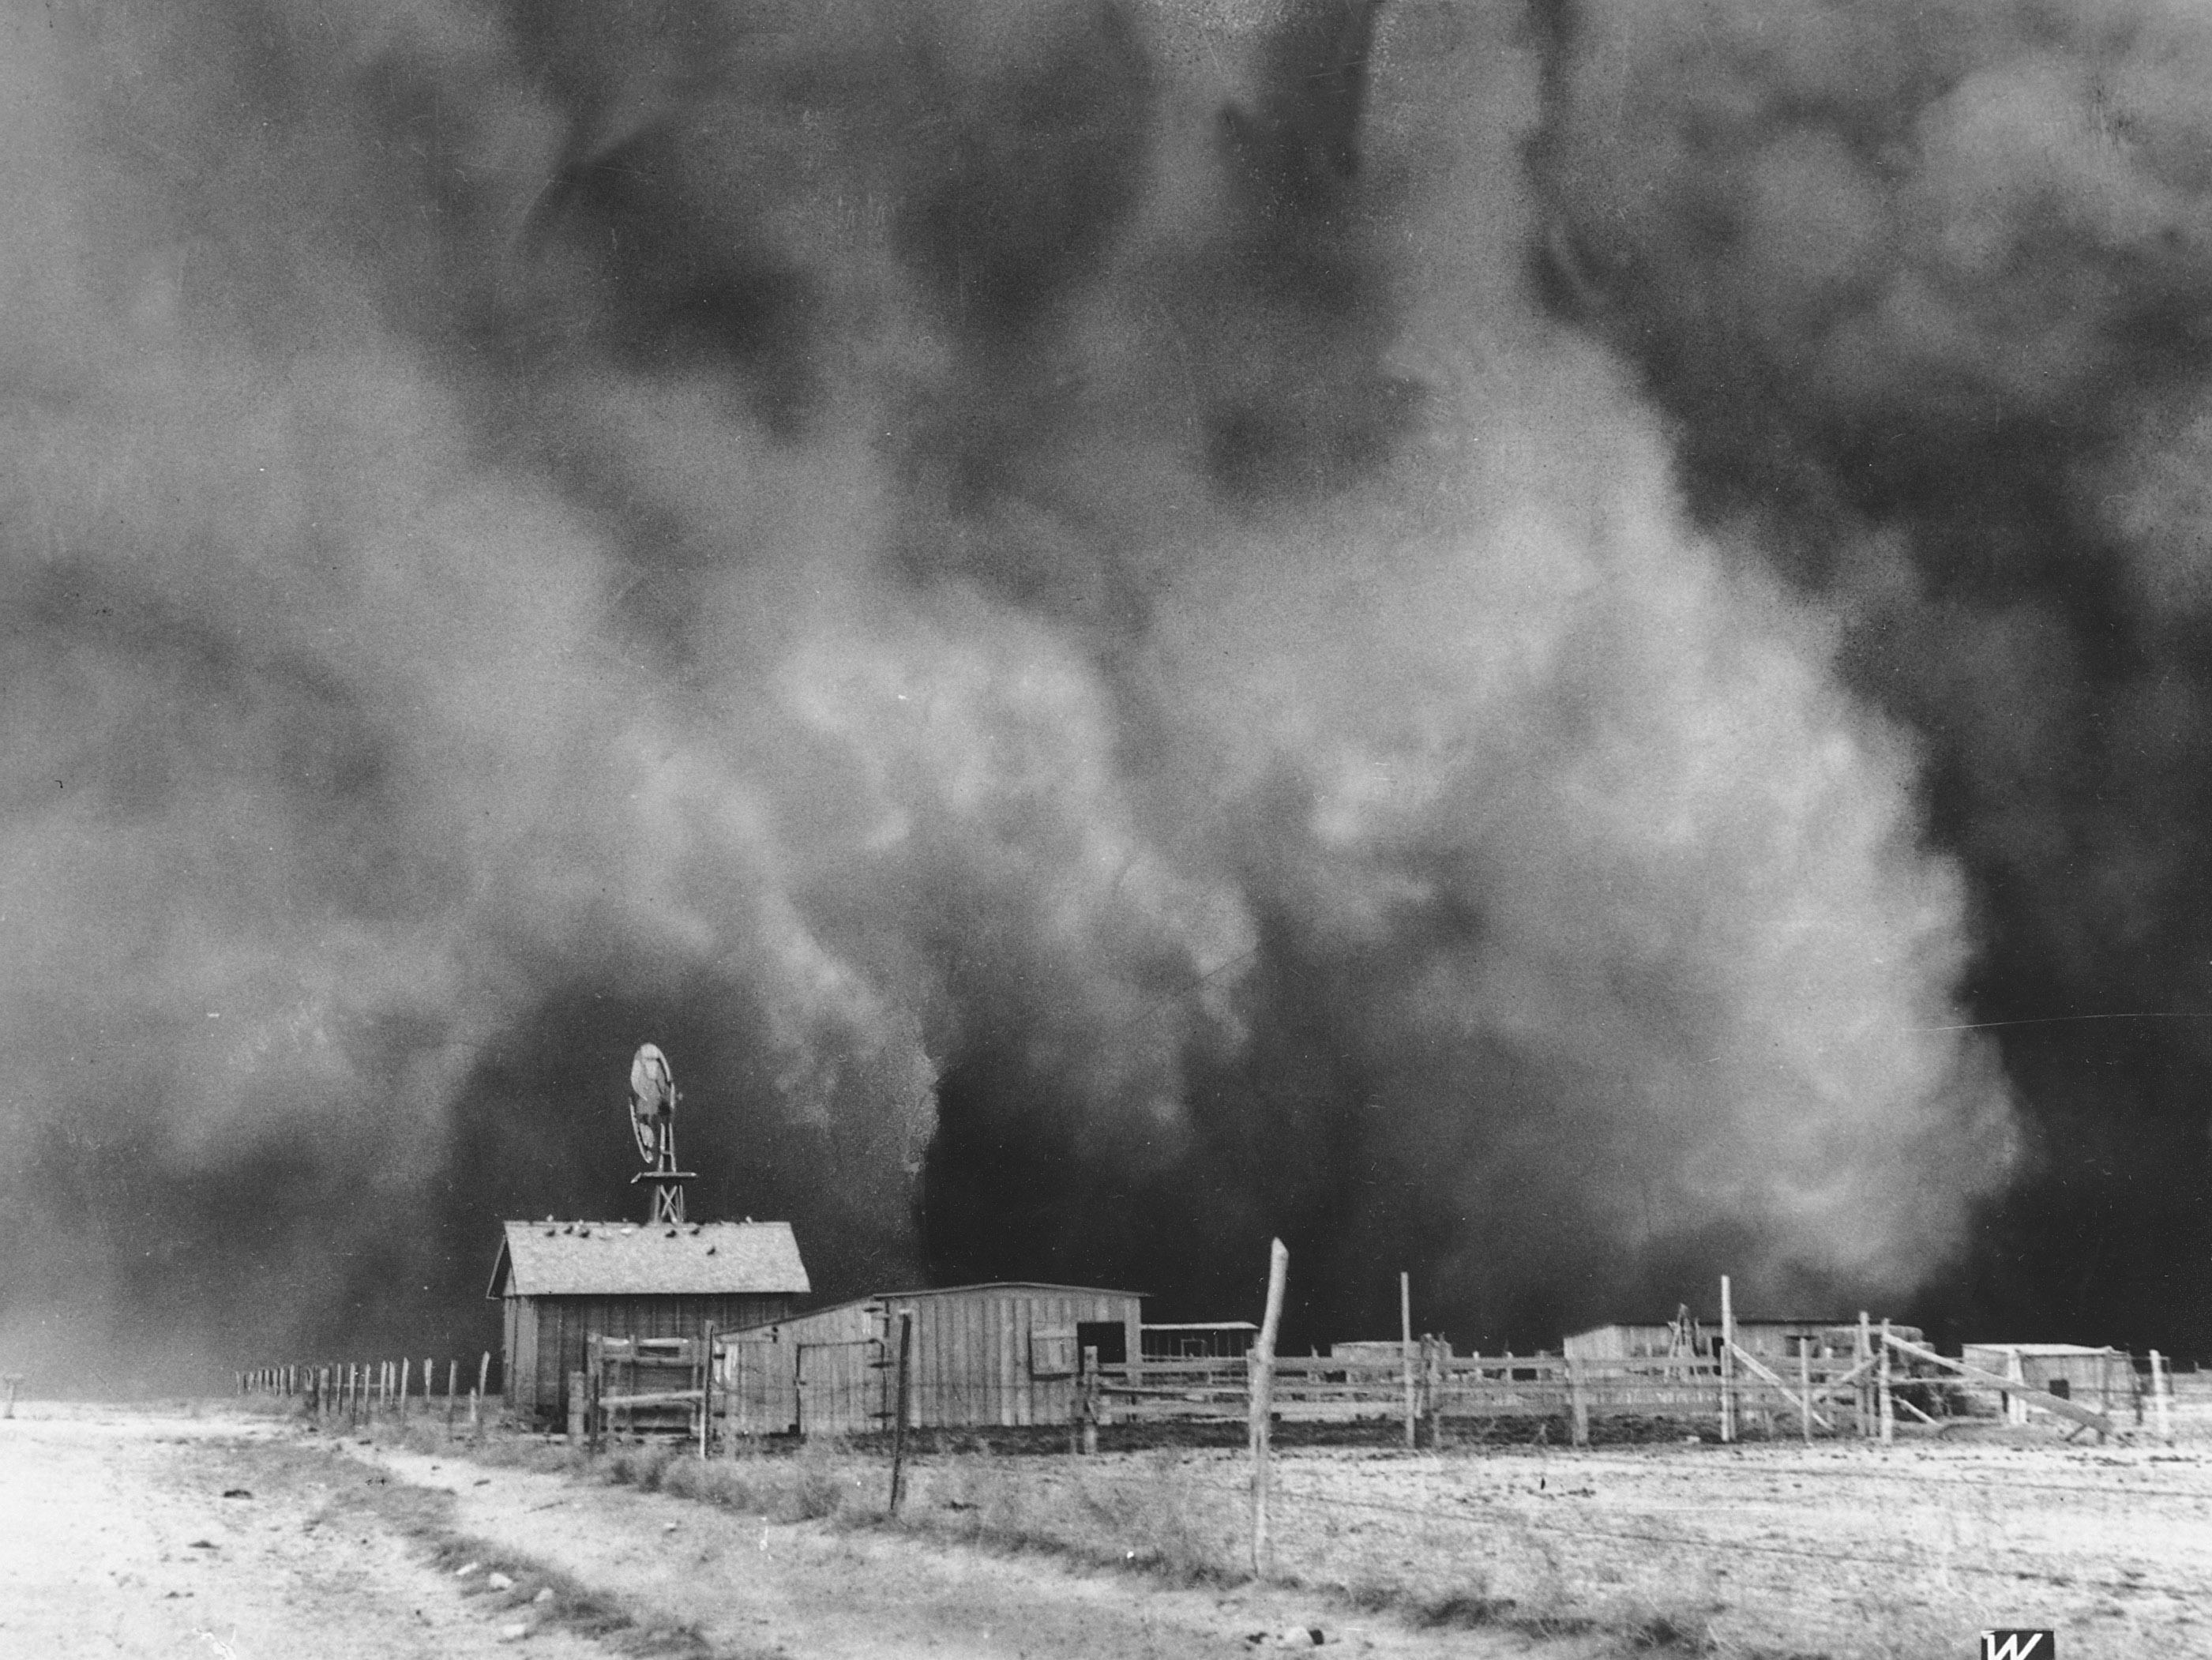 This drought 39 s no dry run lessons of the dust bowl npr for Ranch bowling